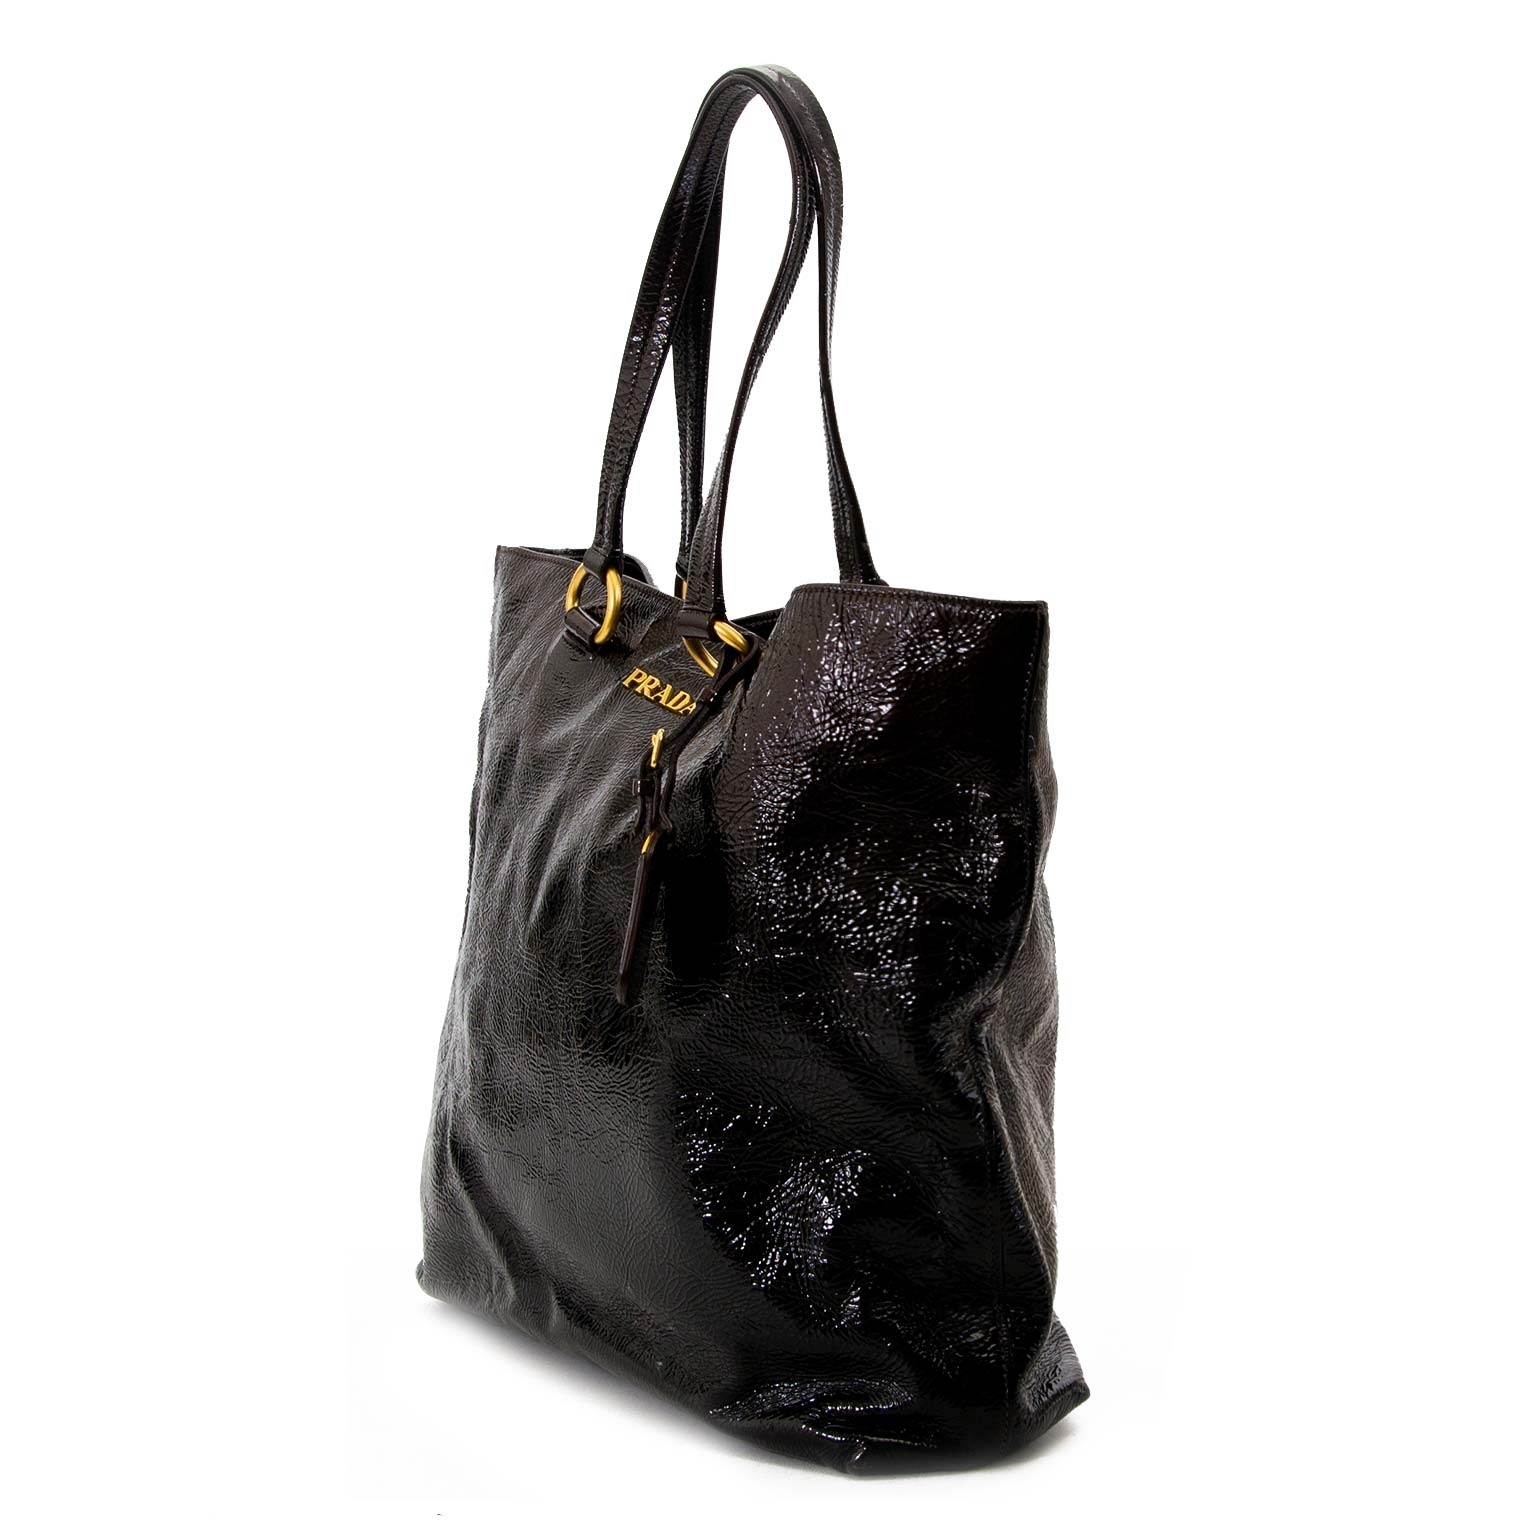 ... Prada Dark Brown Patent Leather Tote Bag now for sale at labellov  antwerp for the best eefd7c2affa